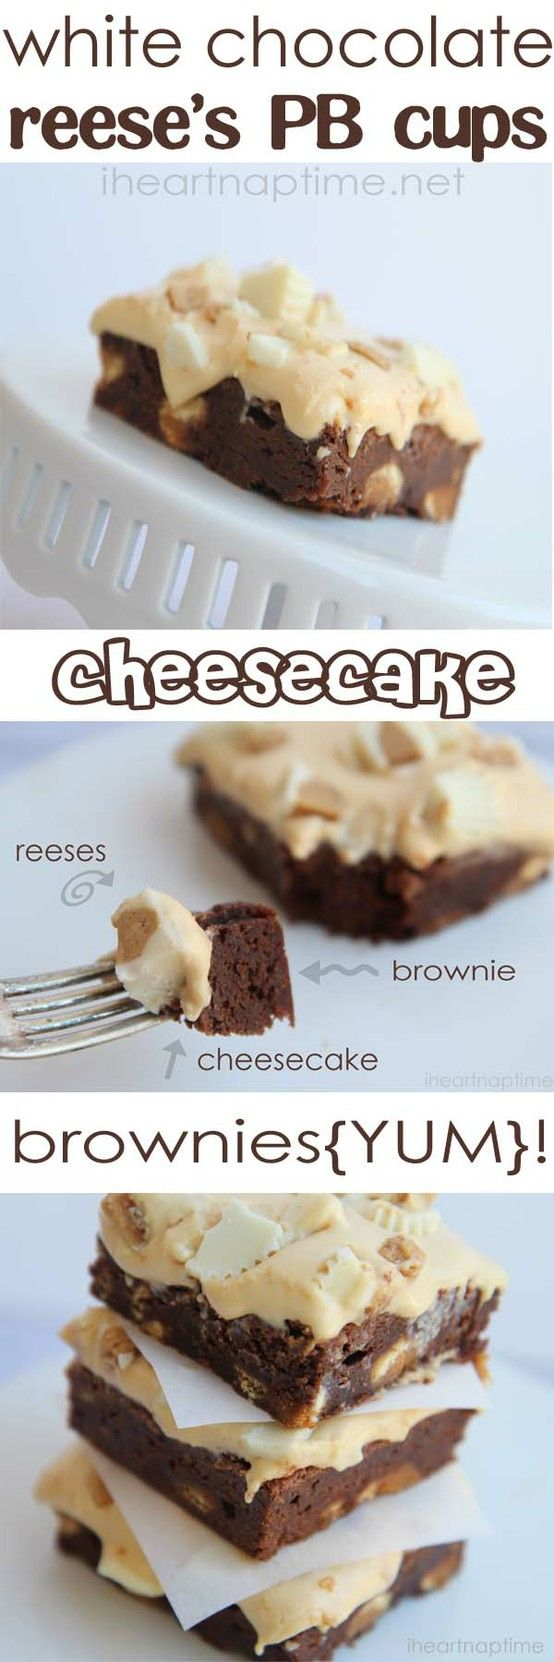 White chocolate...reese's peanut butter cup...cheese cake...brownies. Wow! Can it get any better than that?!